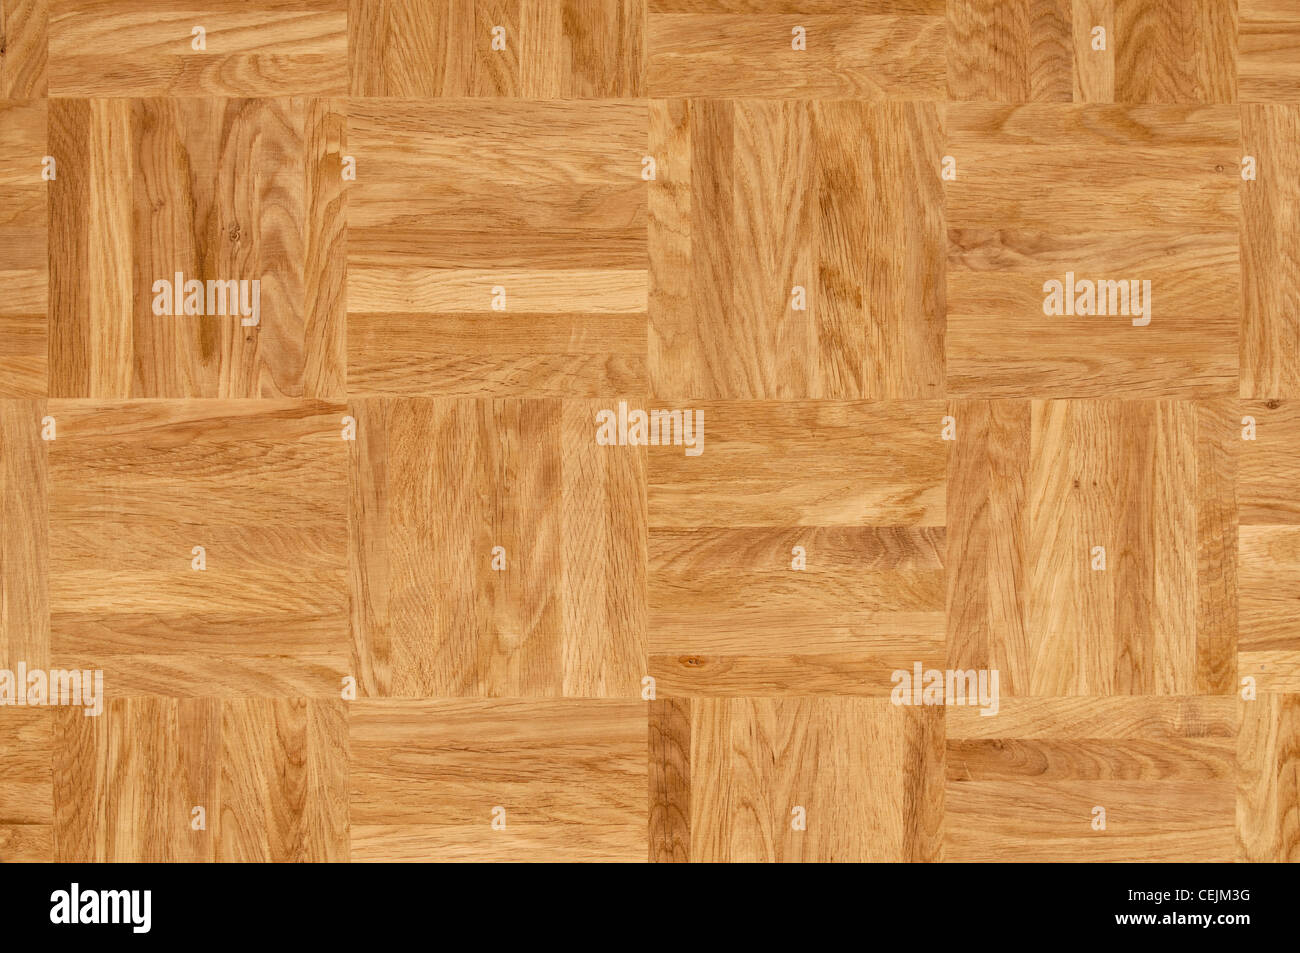 Wood texture - parquet floor made of the natural oak wood. - Stock Image